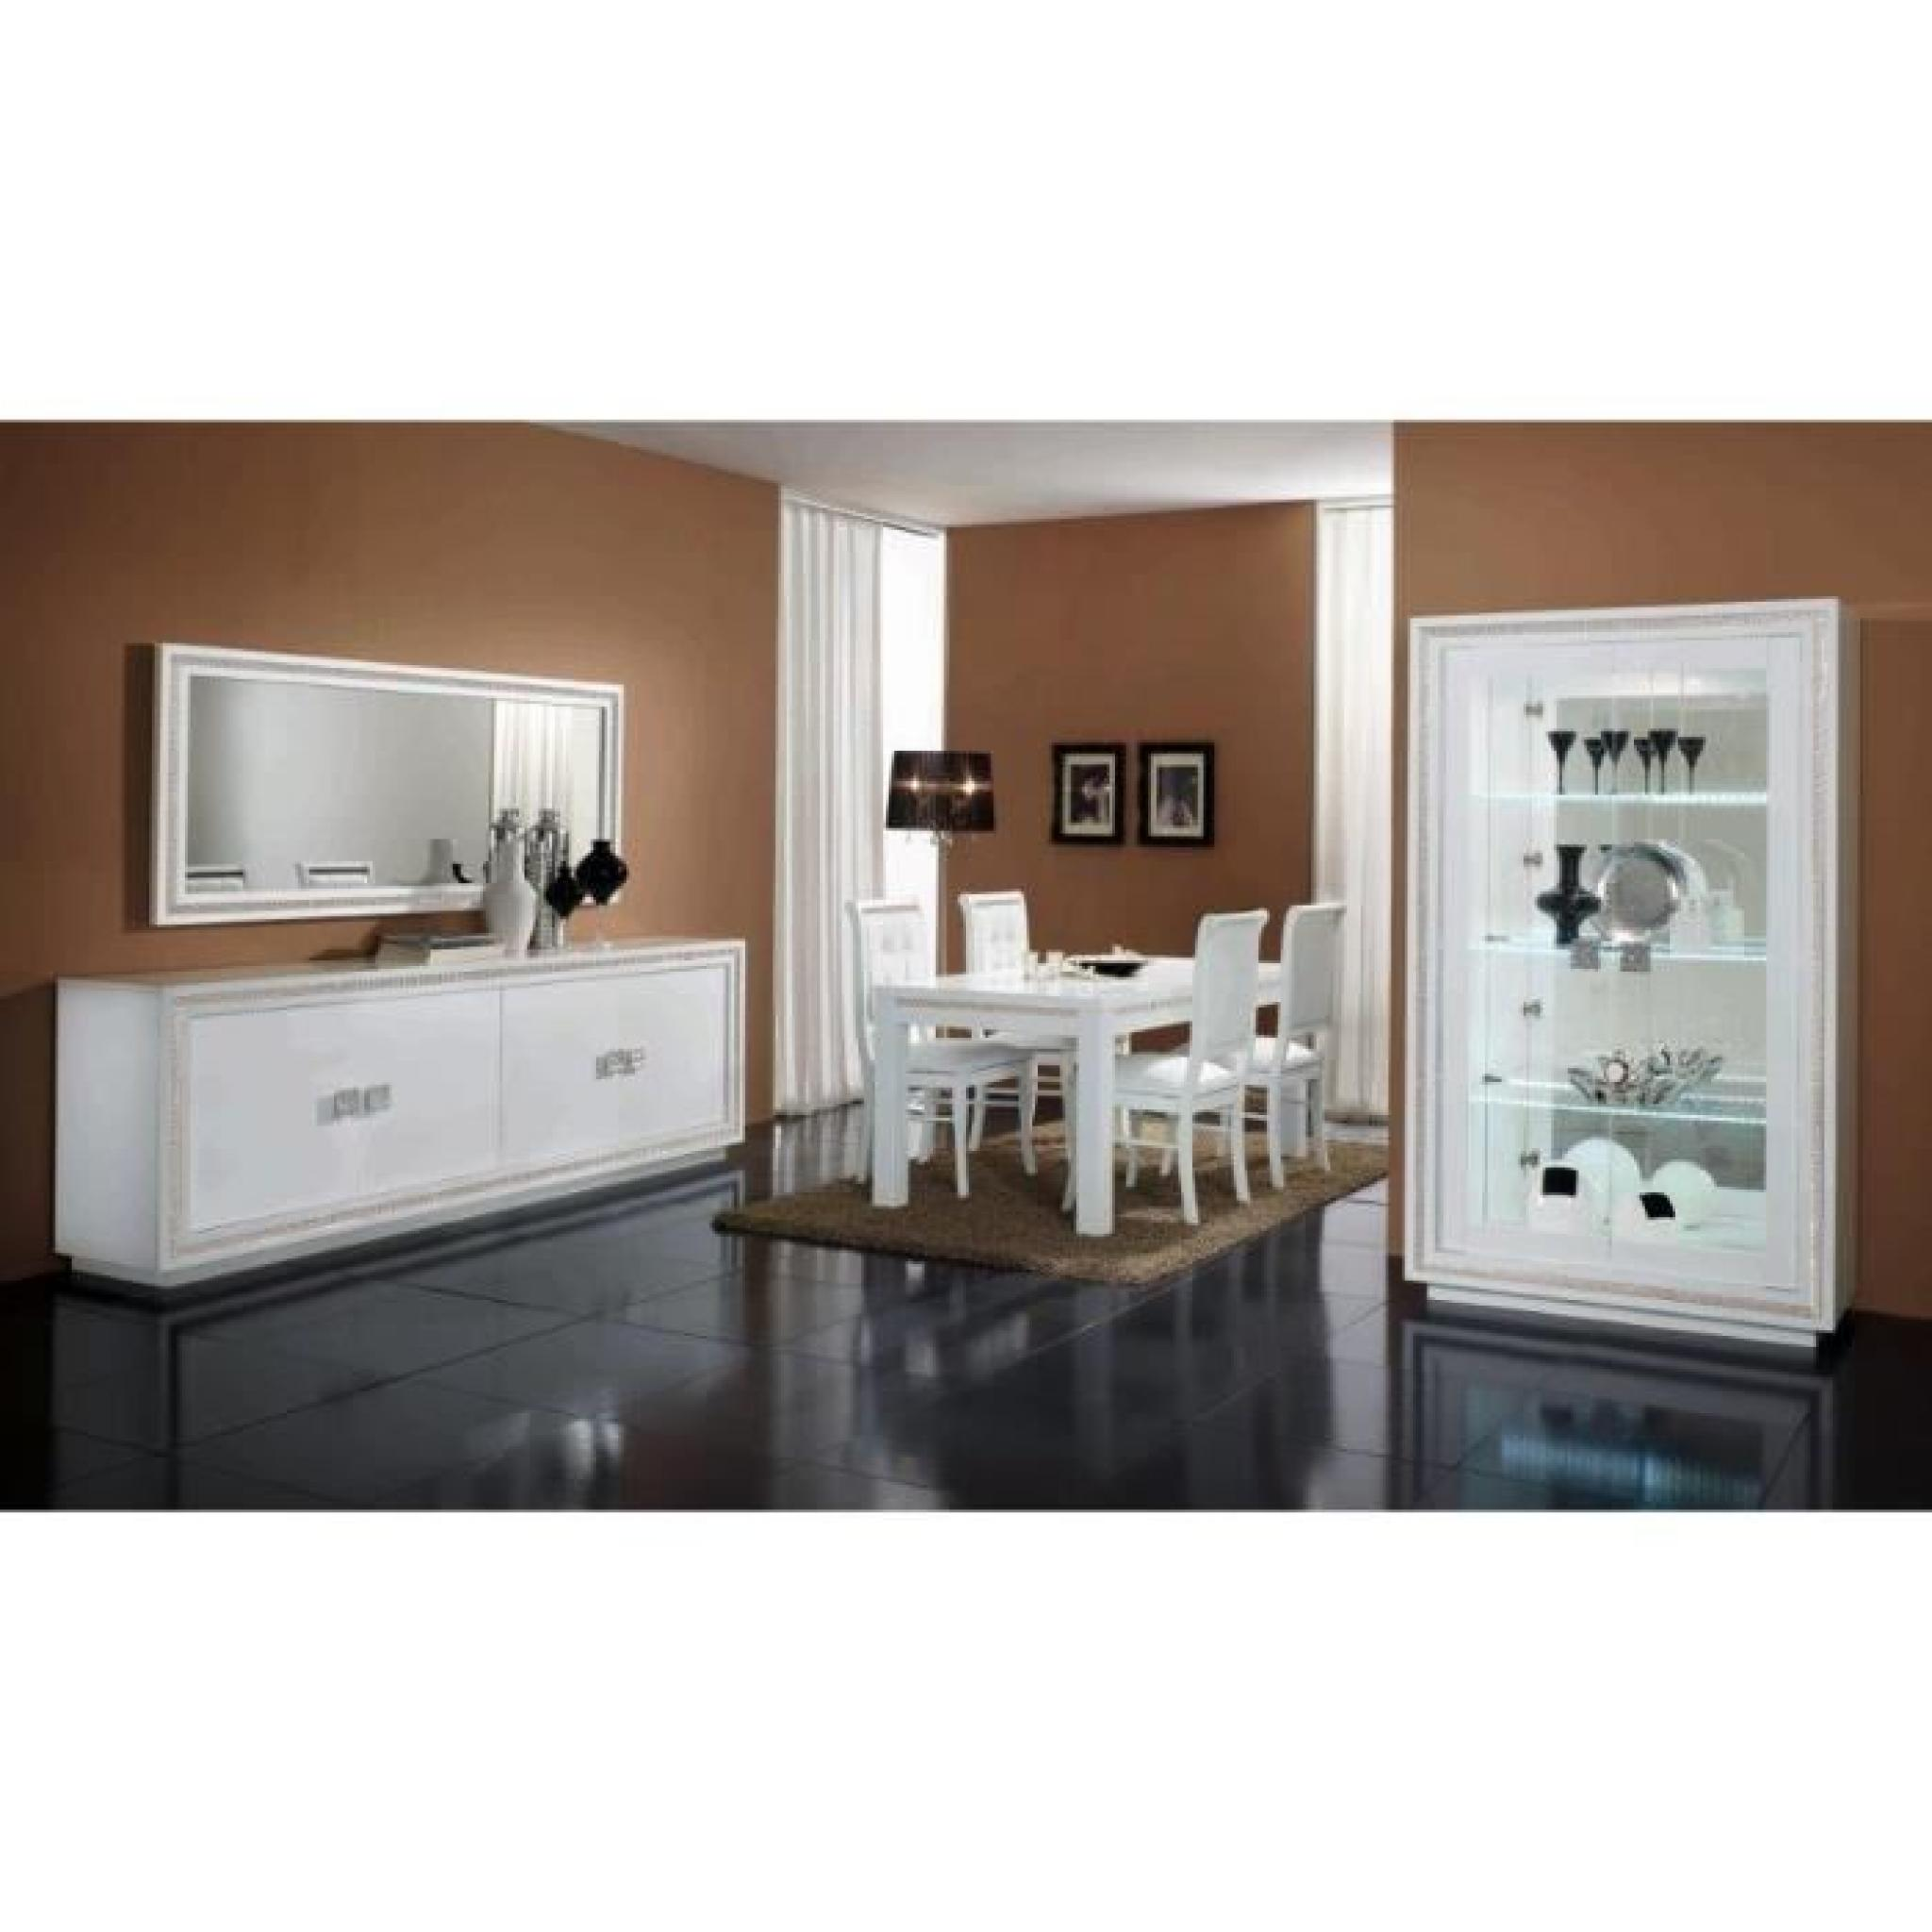 prestige laque blanche ensemble salle a manger vitrine 2 portes bahut 4 portes miroir 190. Black Bedroom Furniture Sets. Home Design Ideas